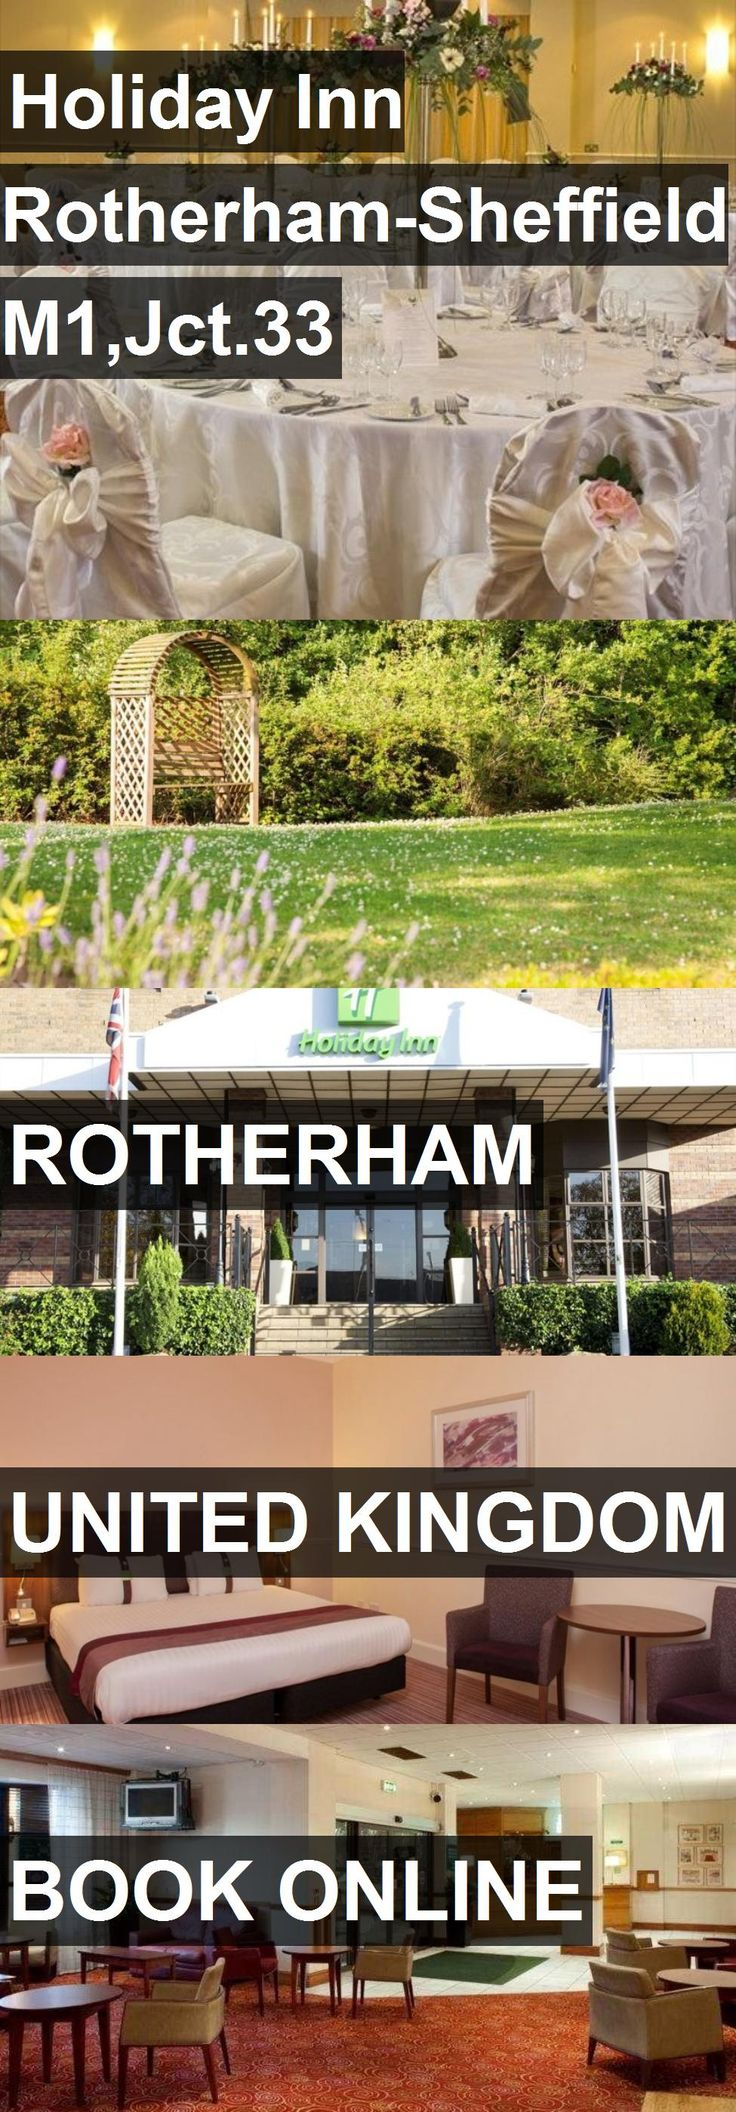 Hotel Holiday Inn Rotherham-Sheffield M1,Jct.33 in Rotherham, United Kingdom. For more information, photos, reviews and best prices please follow the link. #UnitedKingdom #Rotherham #travel #vacation #hotel